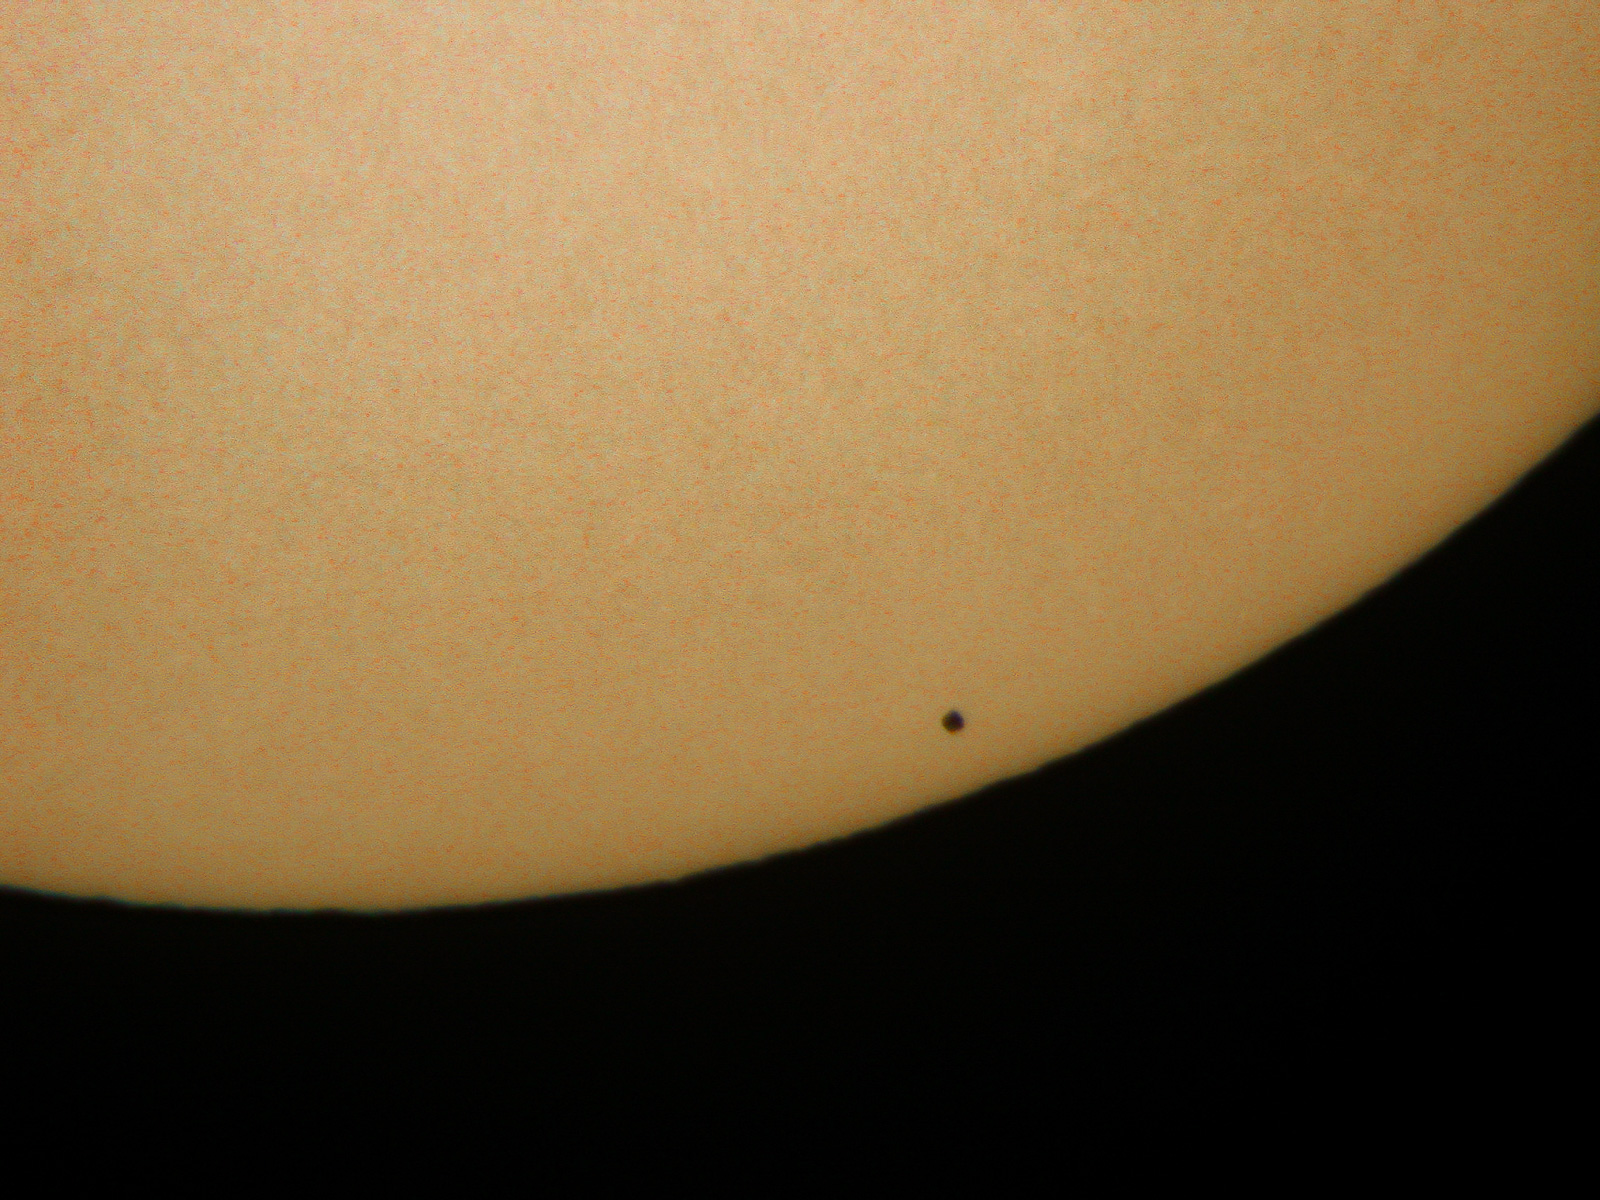 Mercury's disc silhouetted against the sun